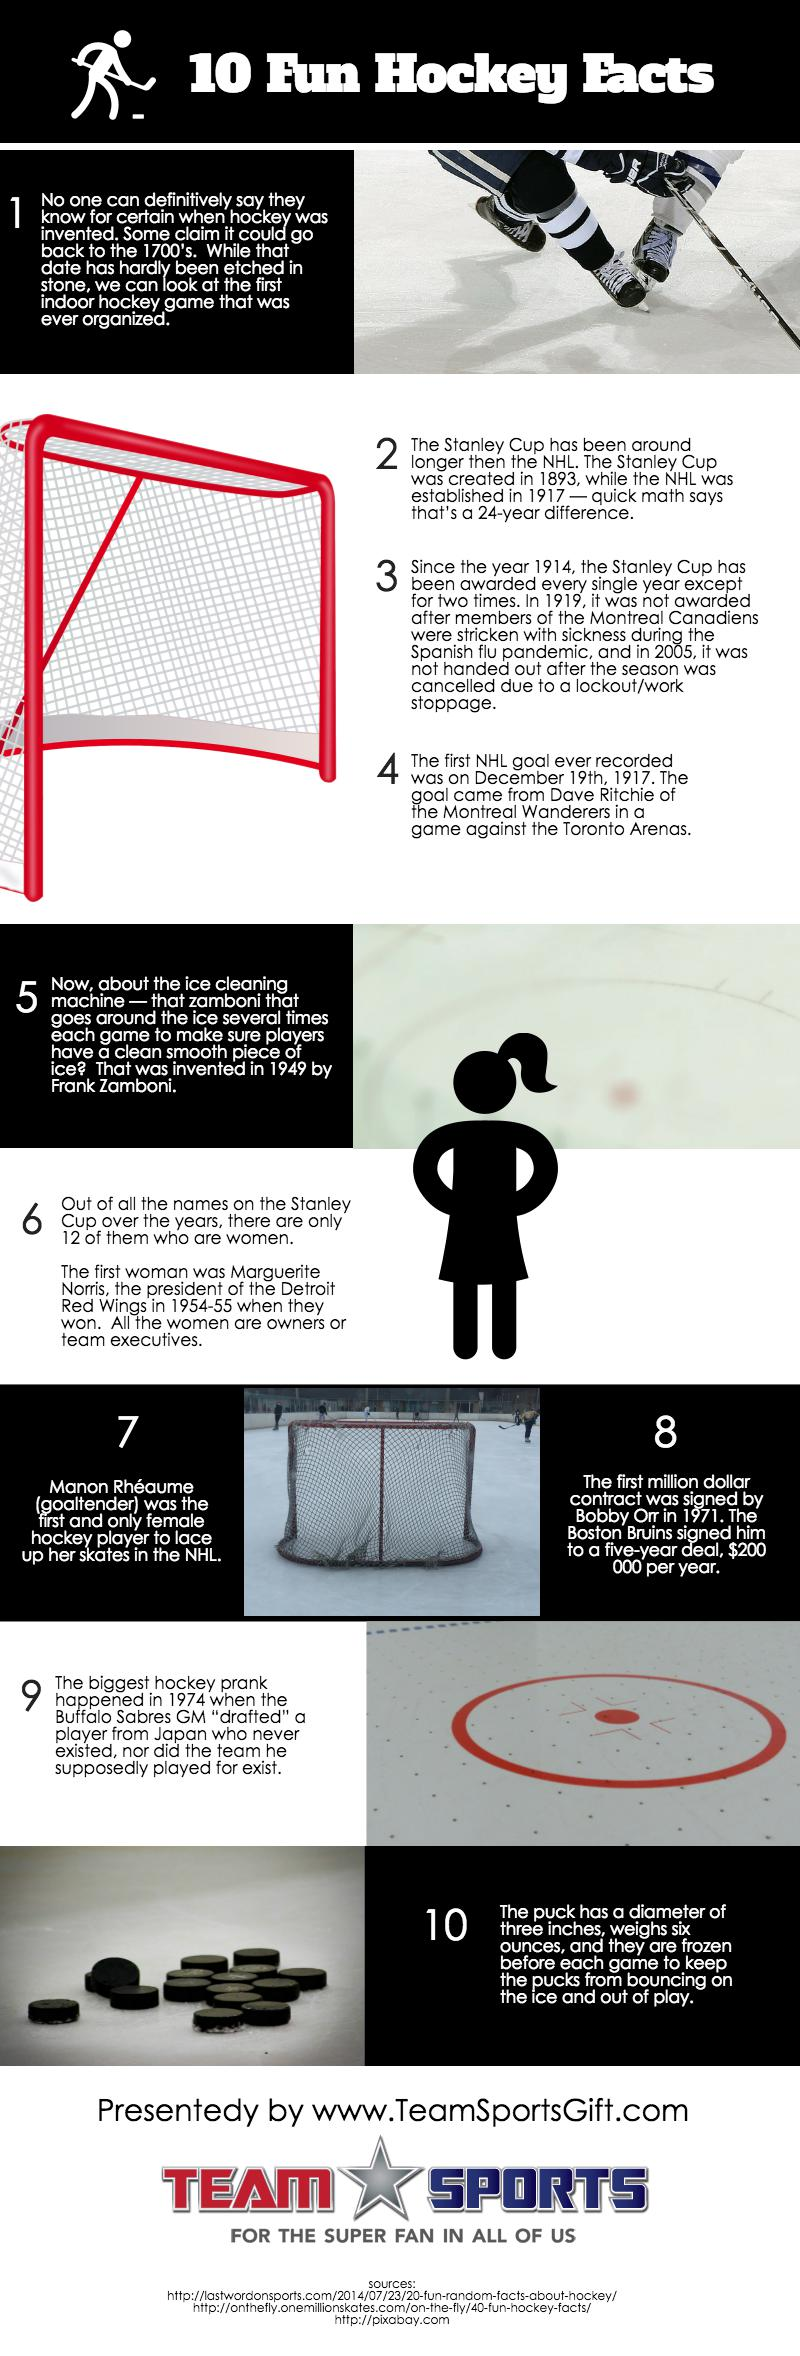 10 Fun Hockey Facts